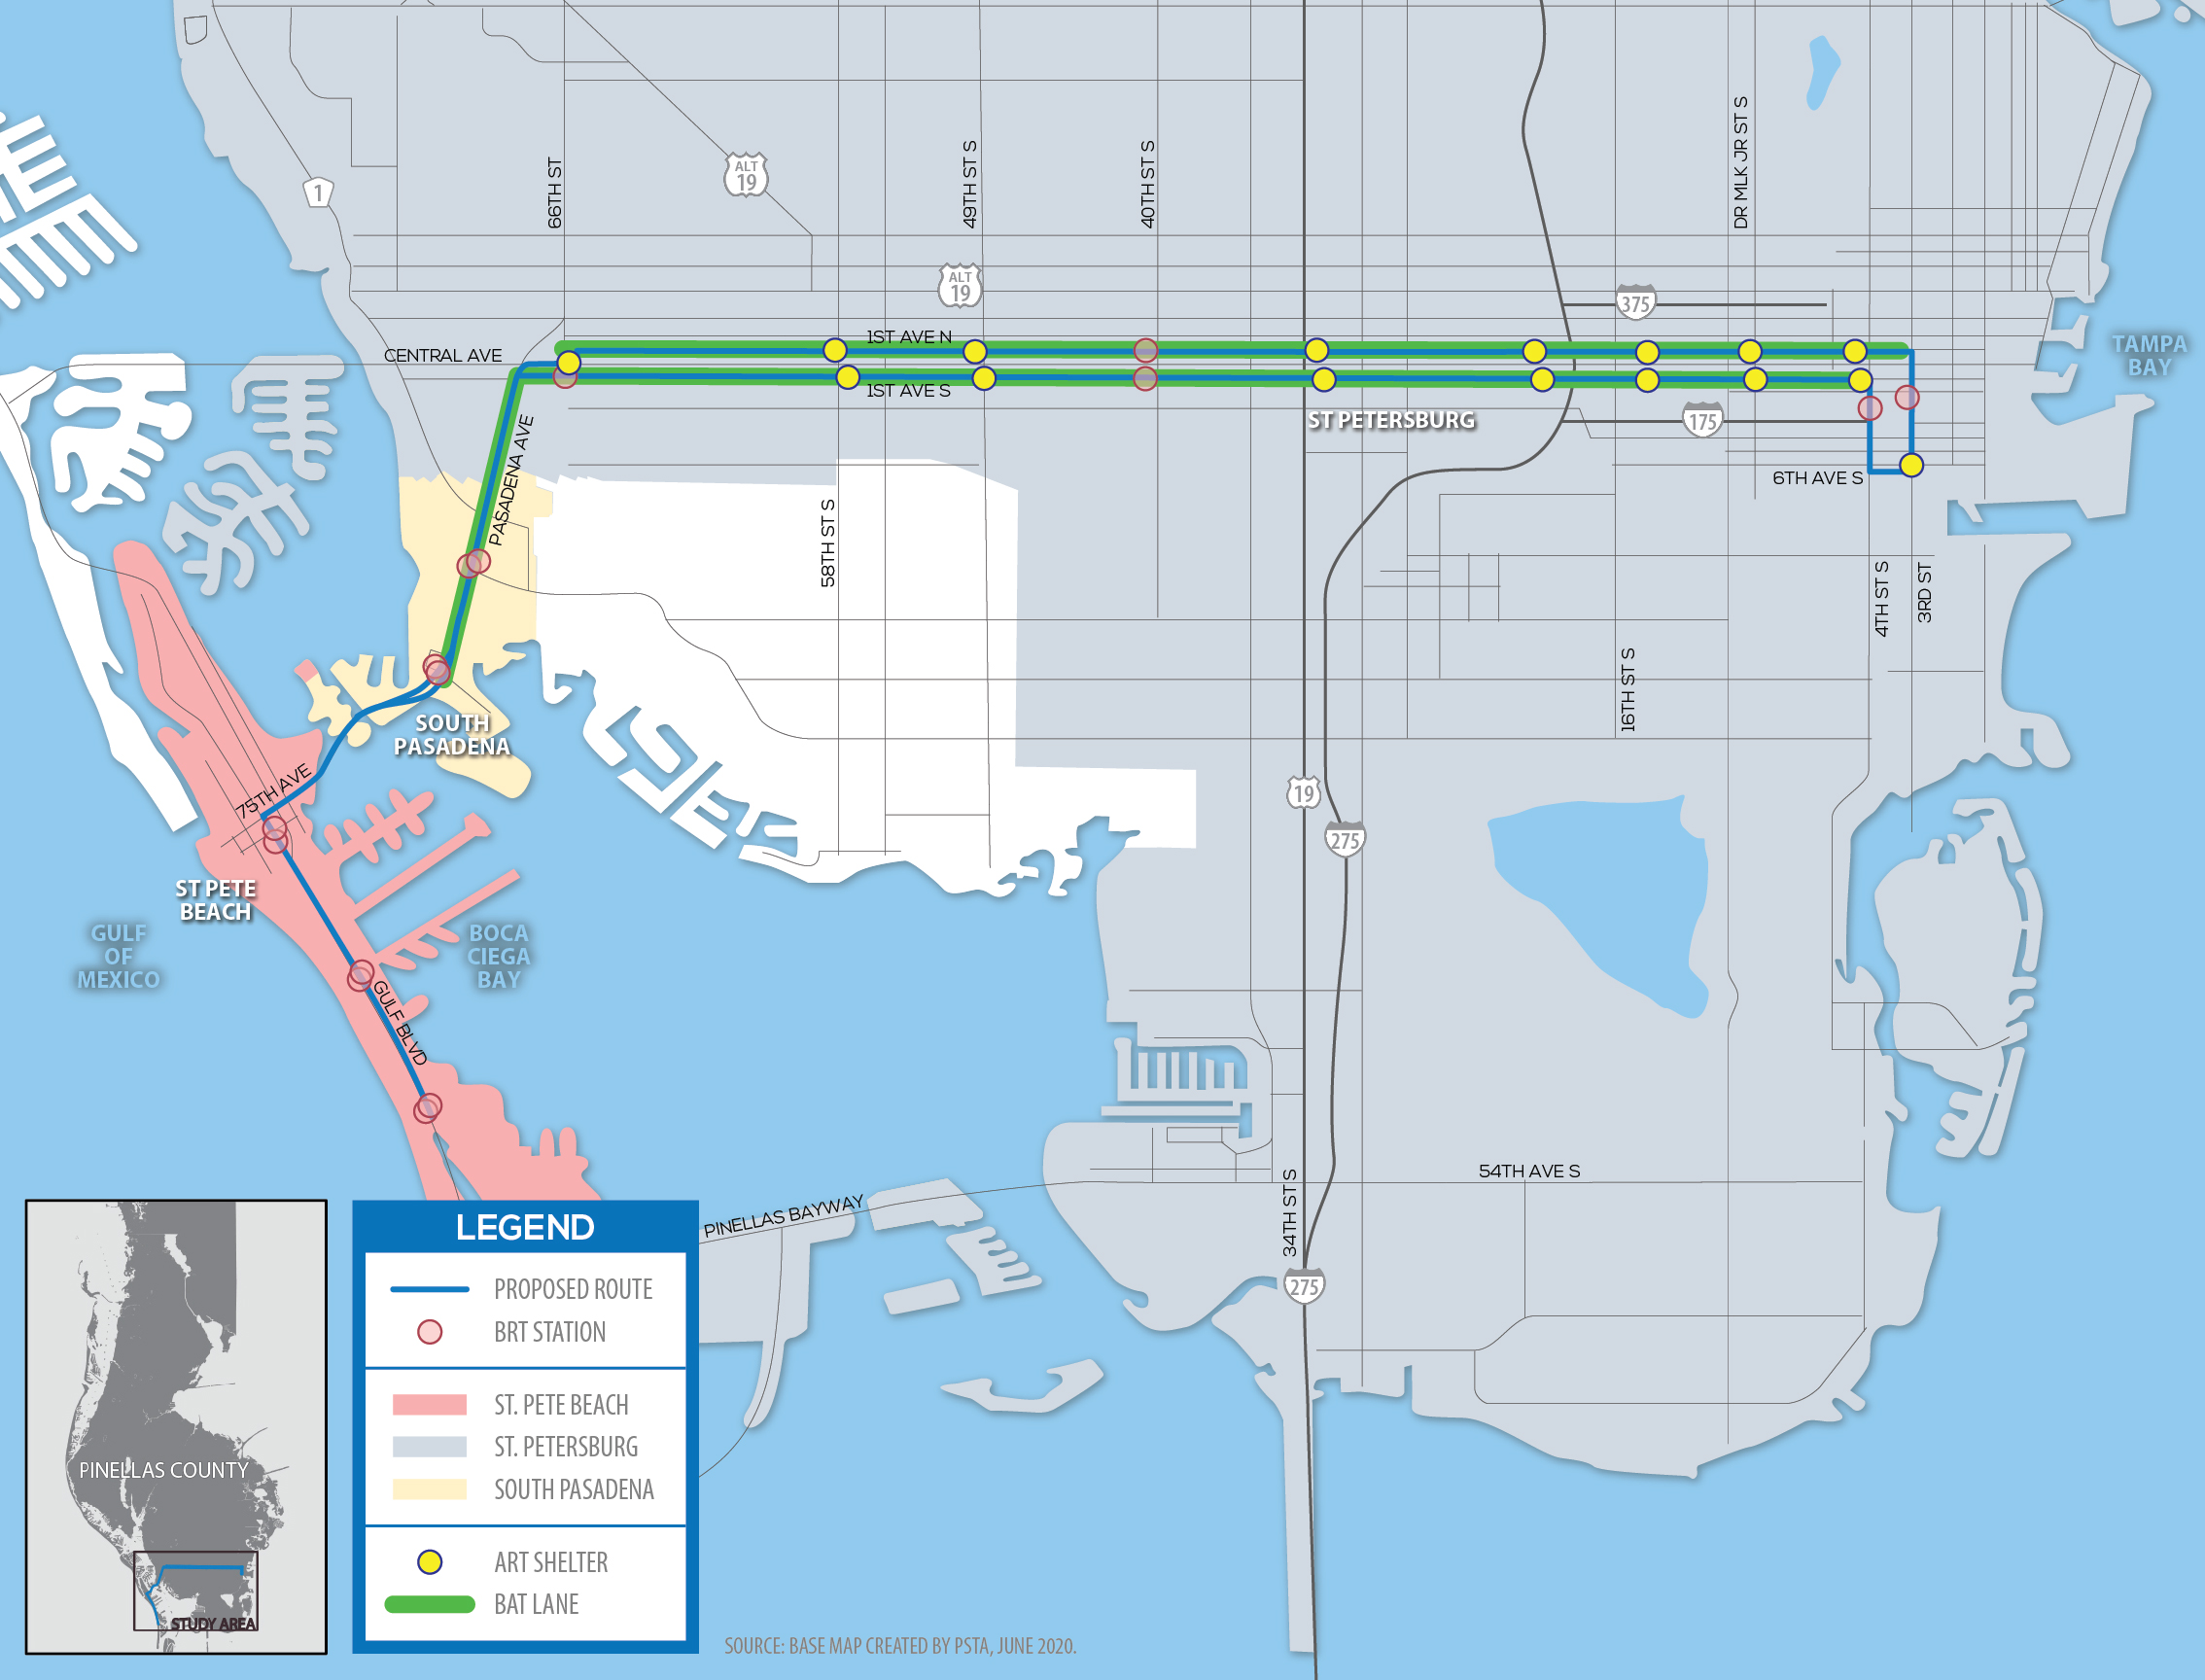 A map of southern Pinellas County Florida showing an east-west route of a city bus that goes south on the west end to St. Pete Beach.